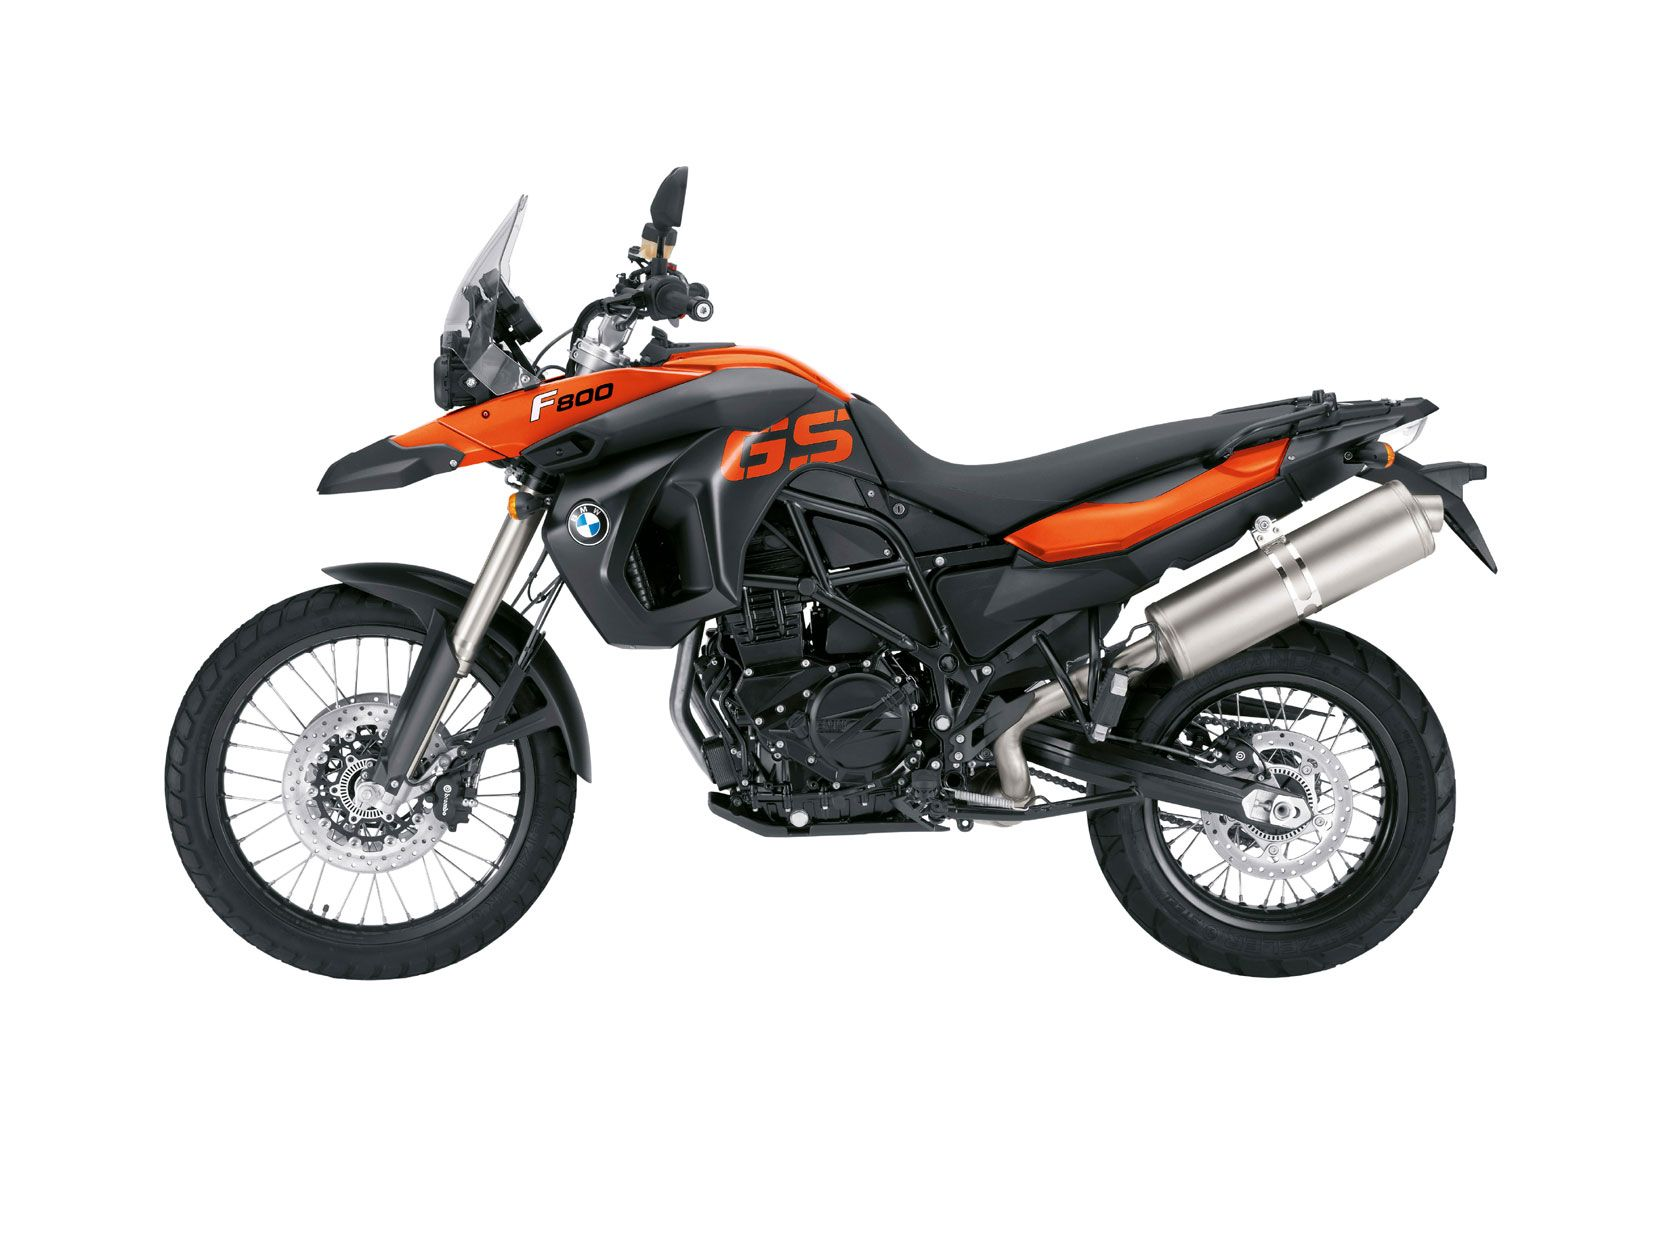 BMW F800GS Easy Rider Motorcycles for sale